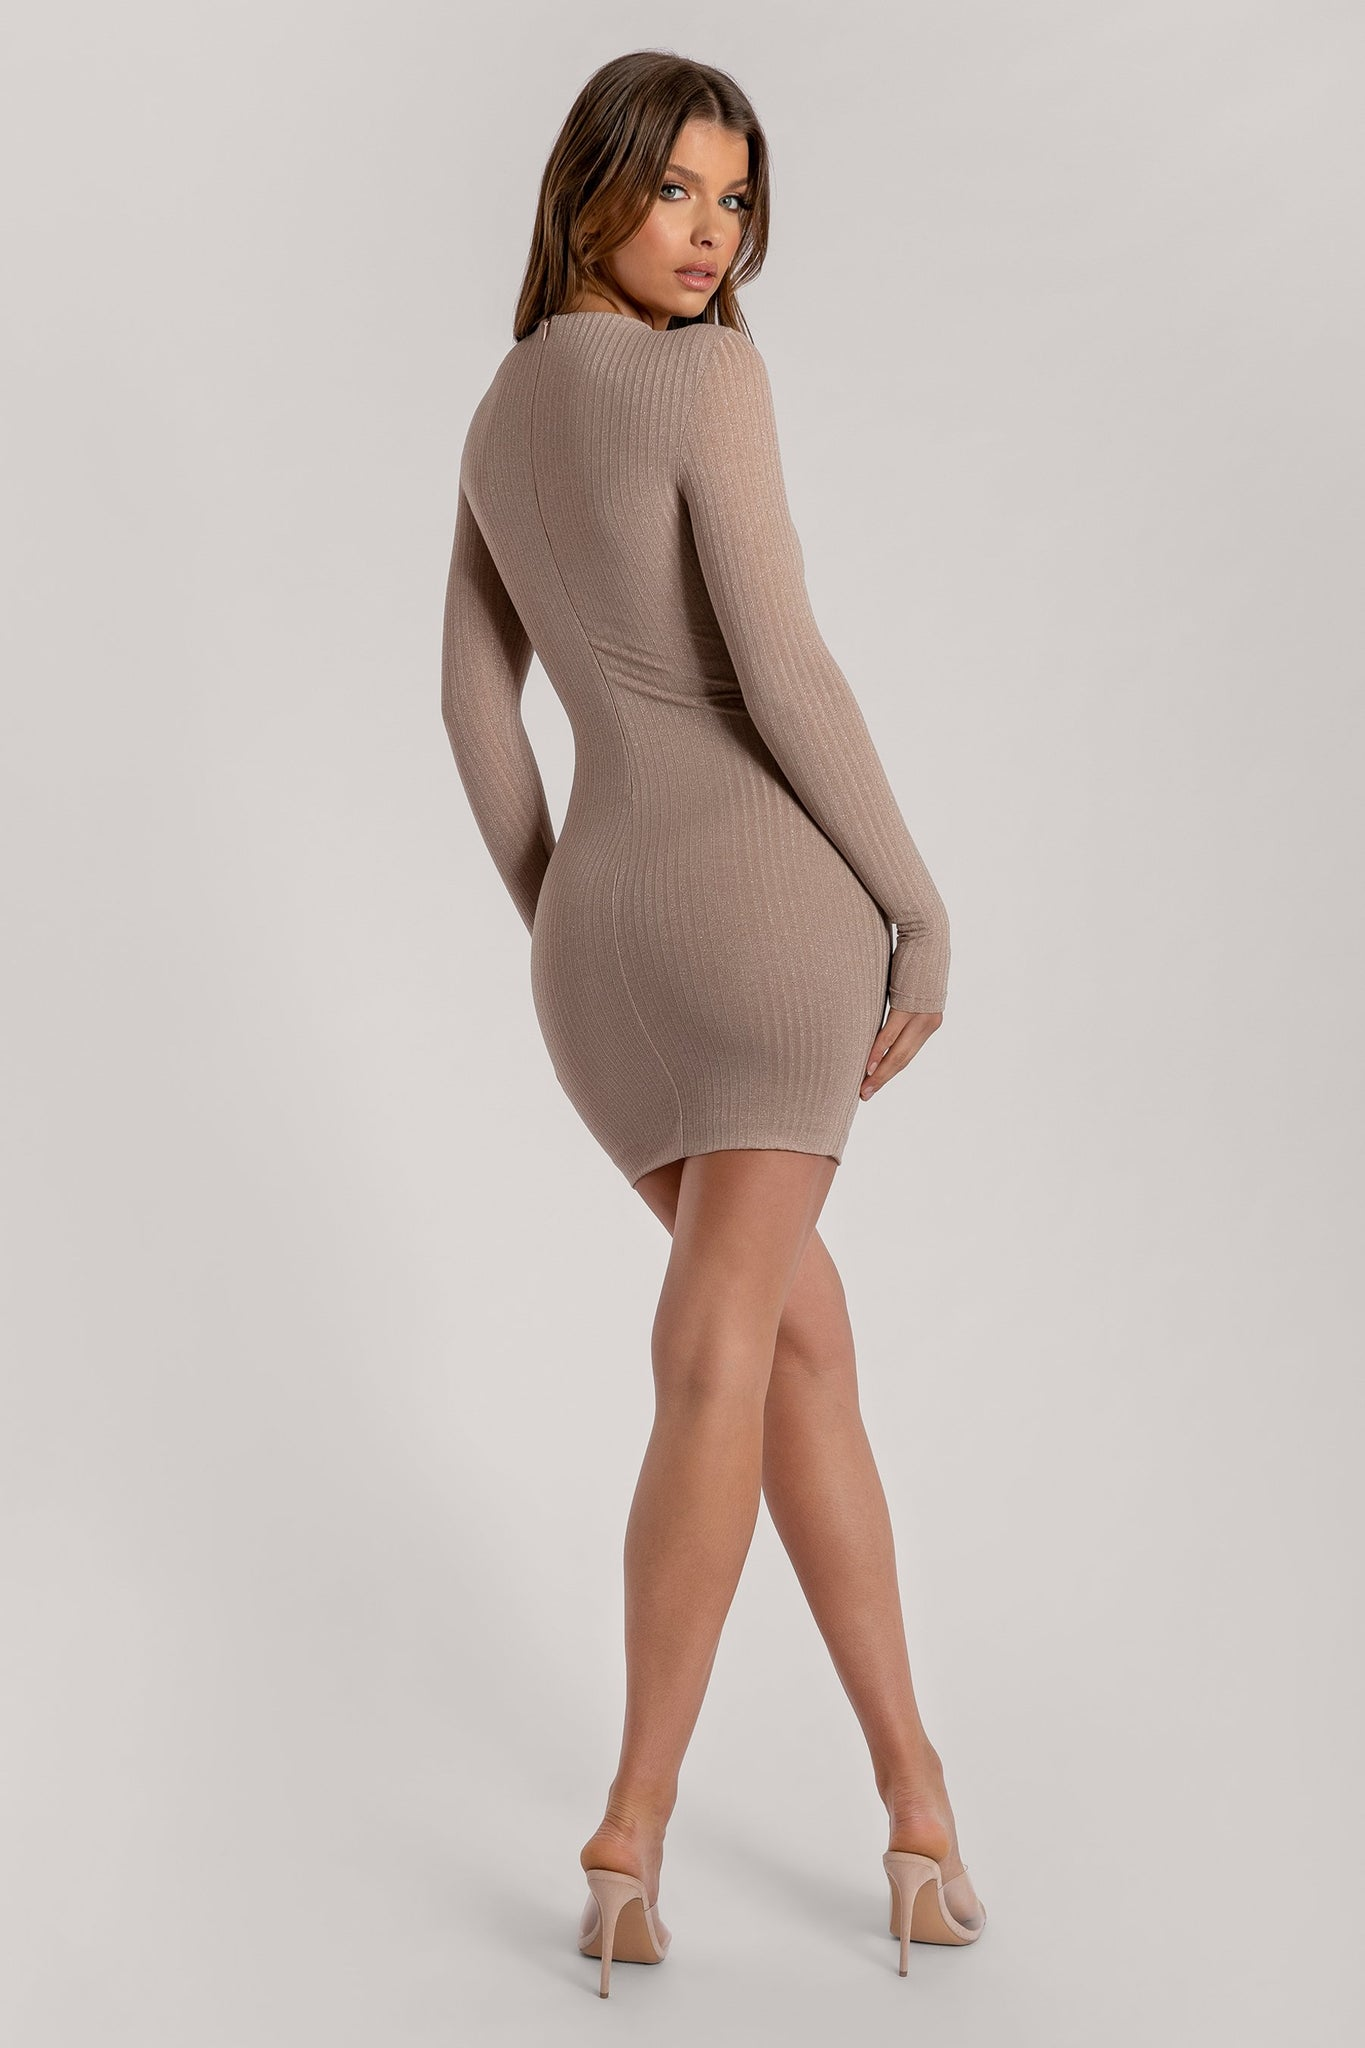 Emilie Long Sleeve Sparkle Rib Knit Mini Dress - Nude - MESHKI